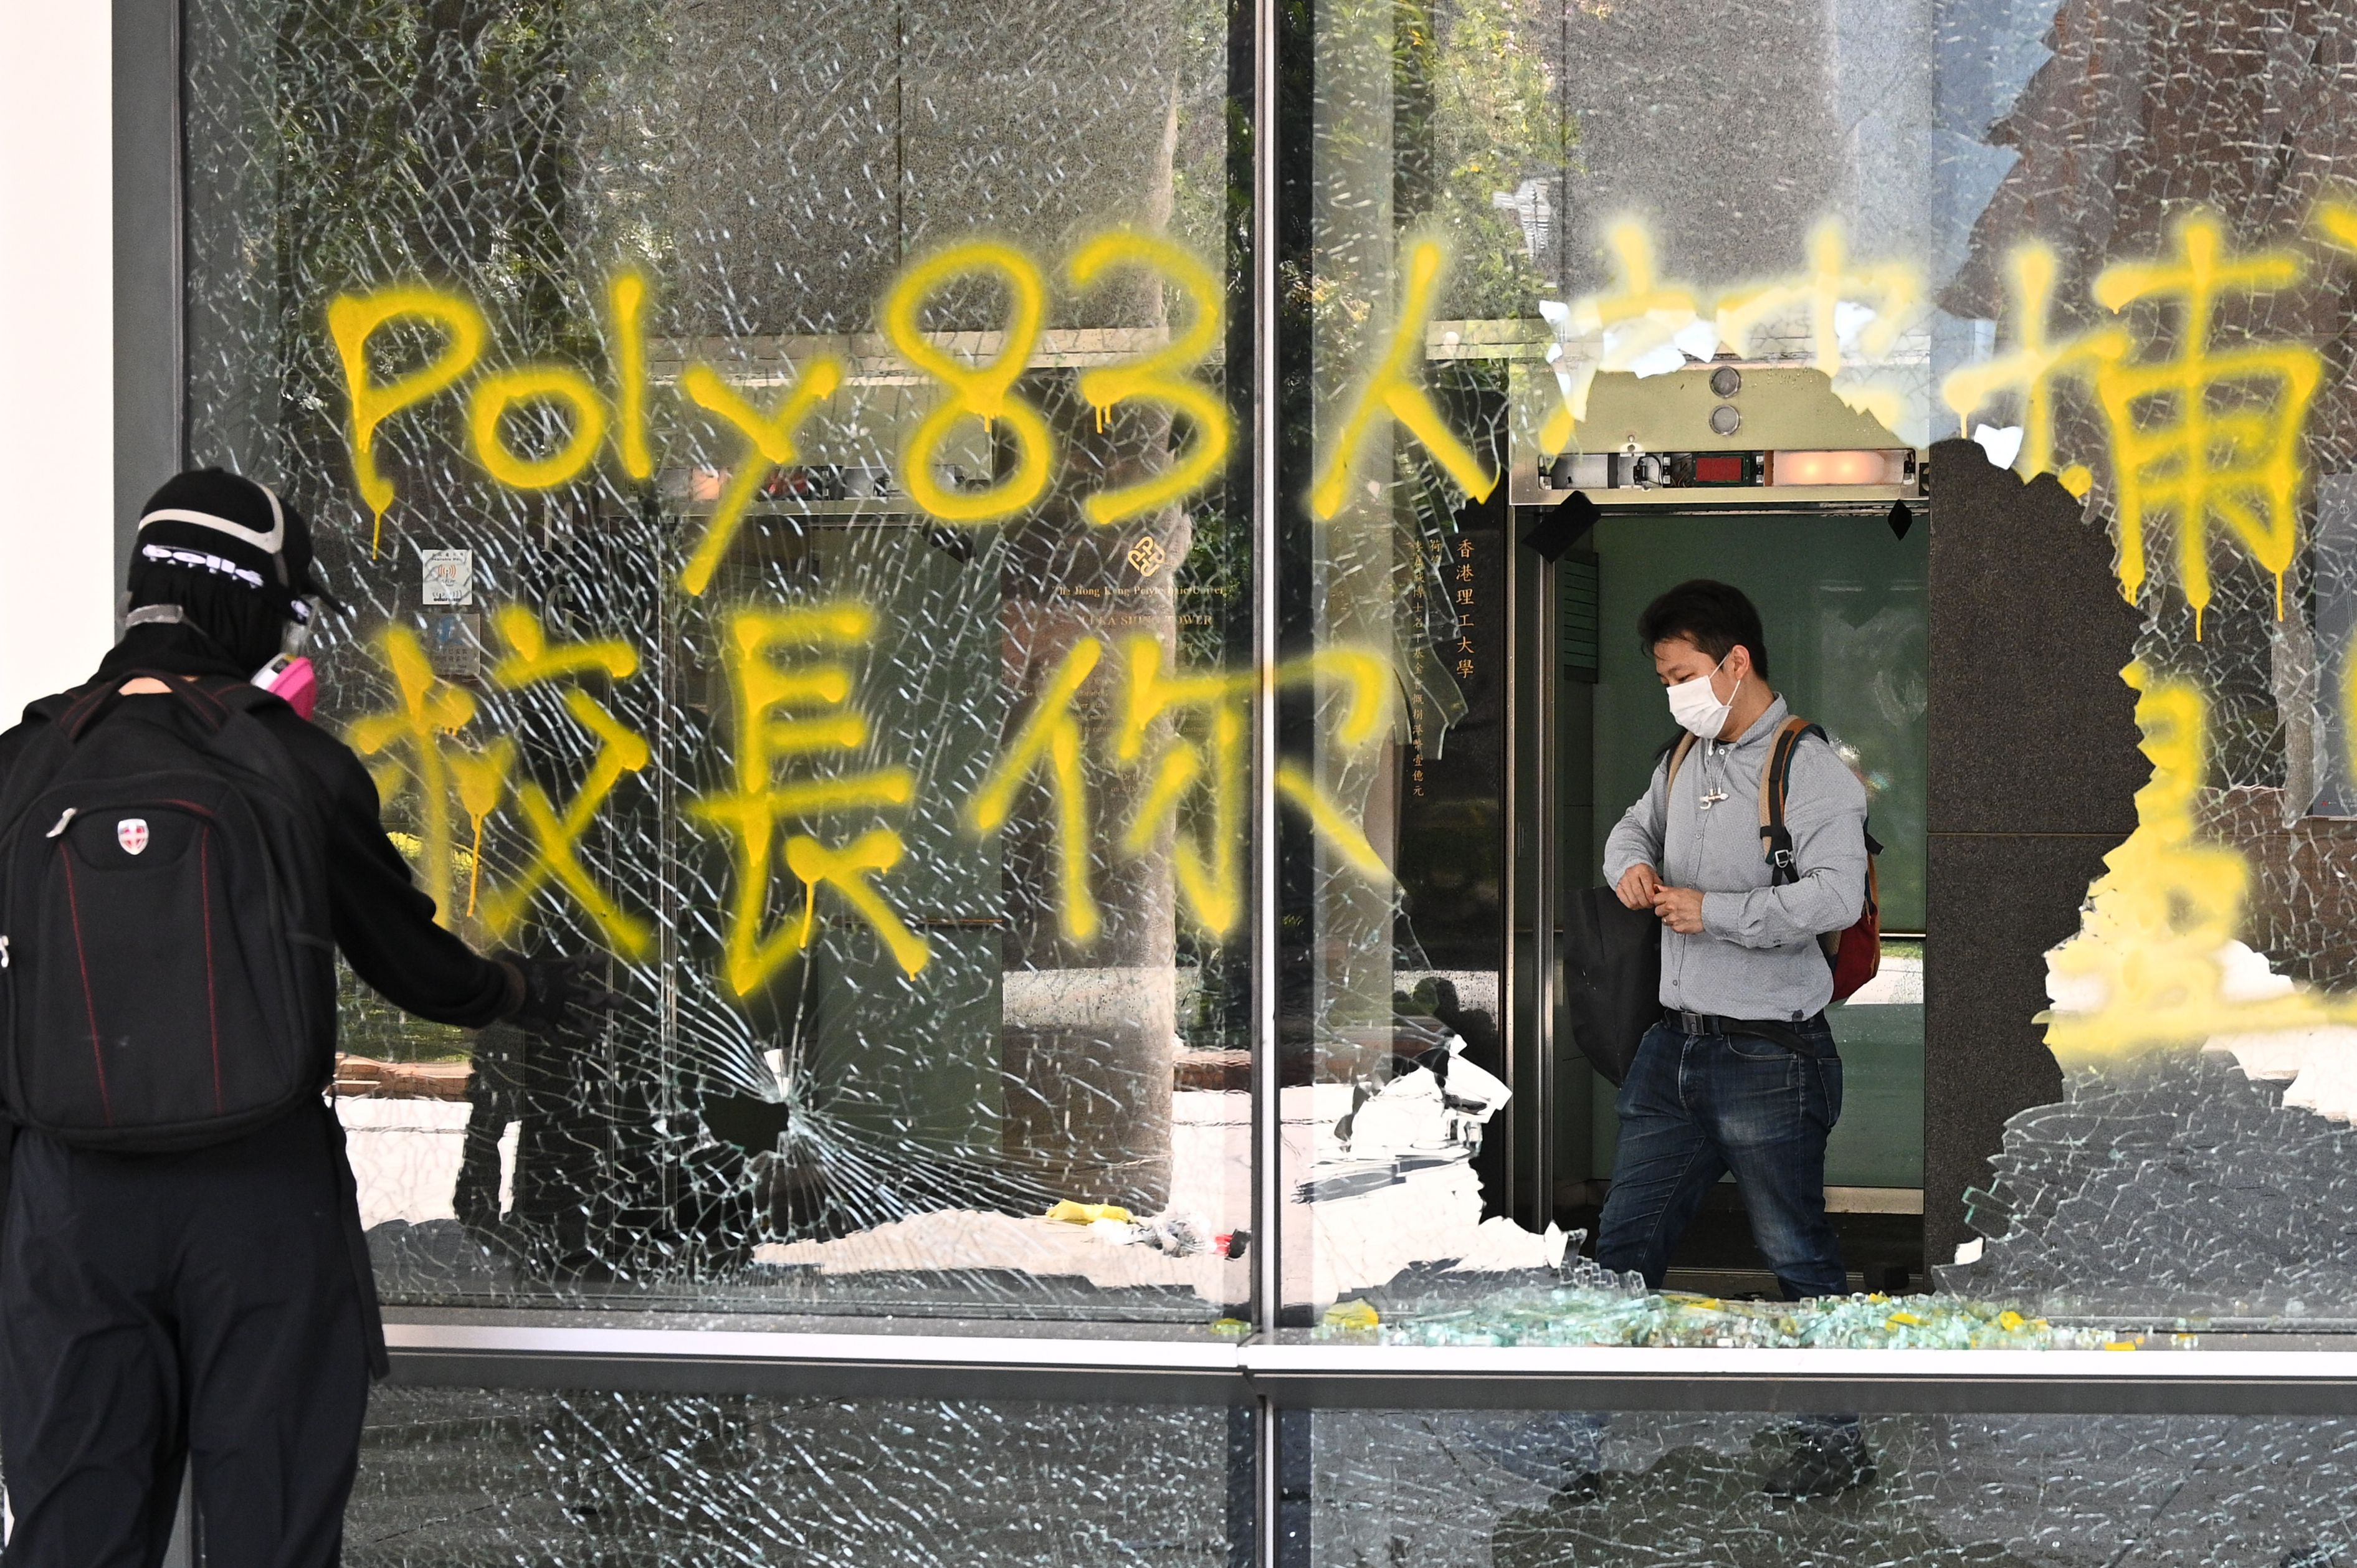 A man (R) stands inside a building as the windows were smashed up in the campus of the Hong Kong Polytechnic University.